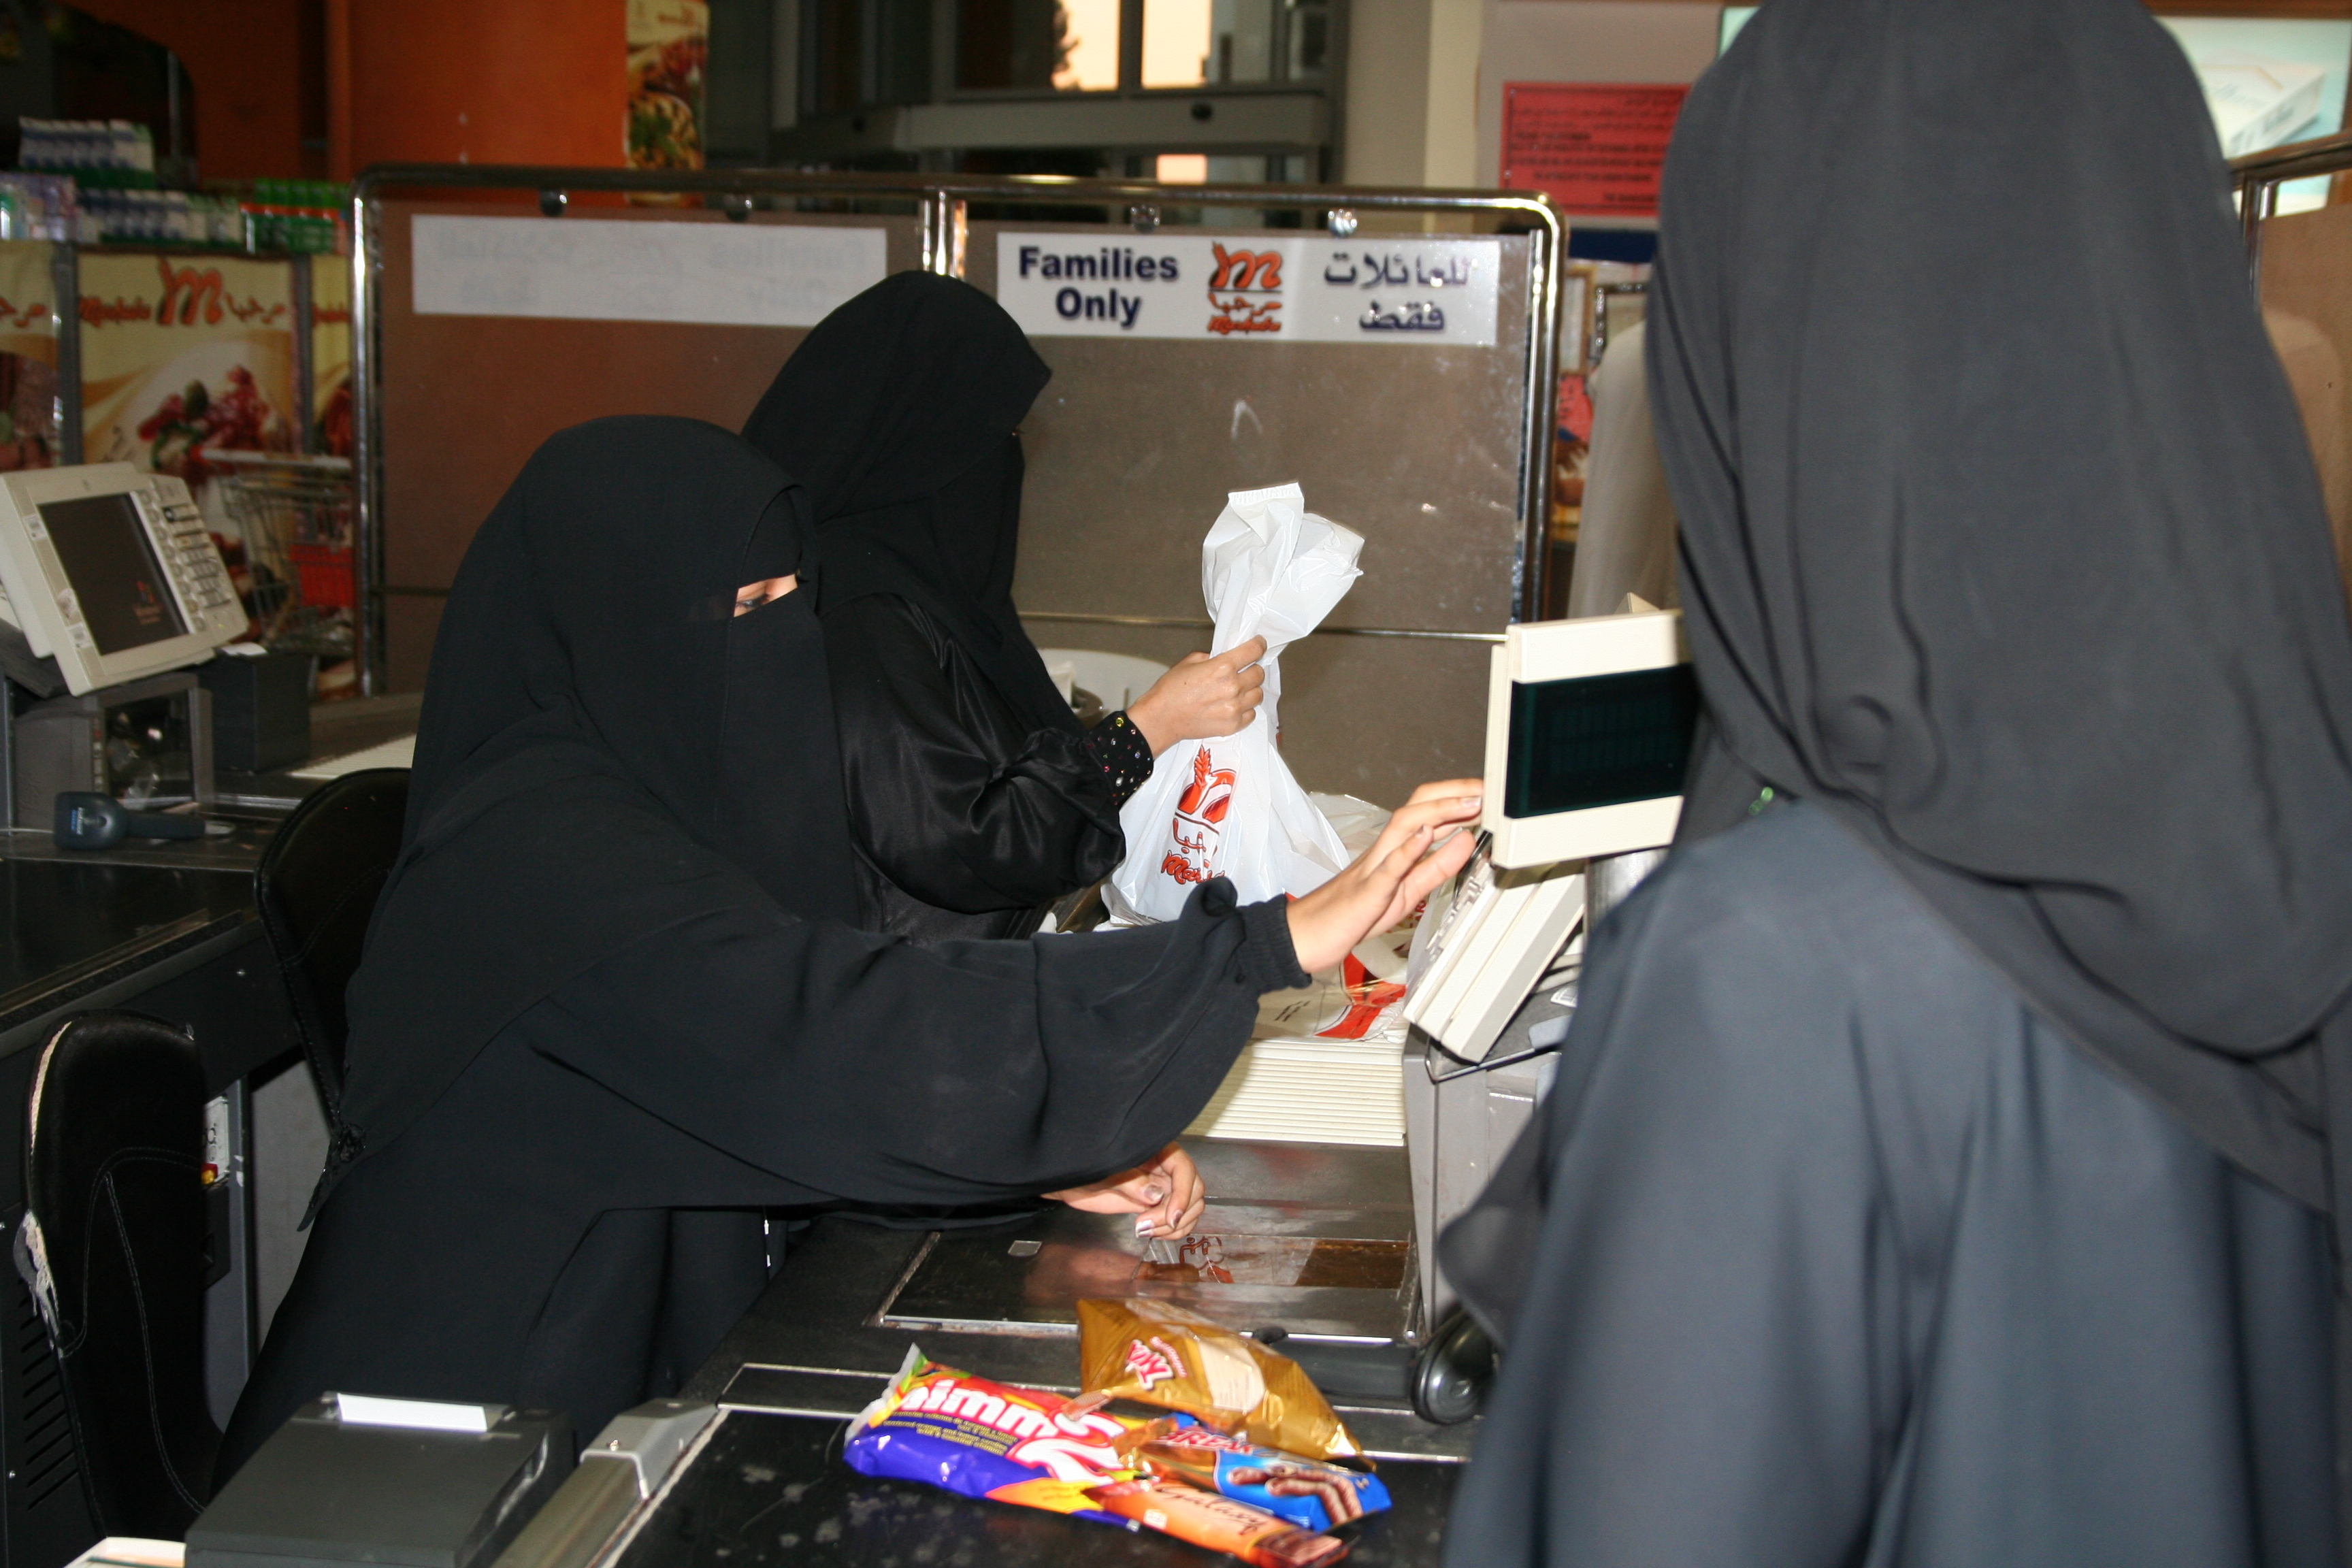 pioneer_female_cashiers._image_by_caryle_murphy_jeddah_2010jpg